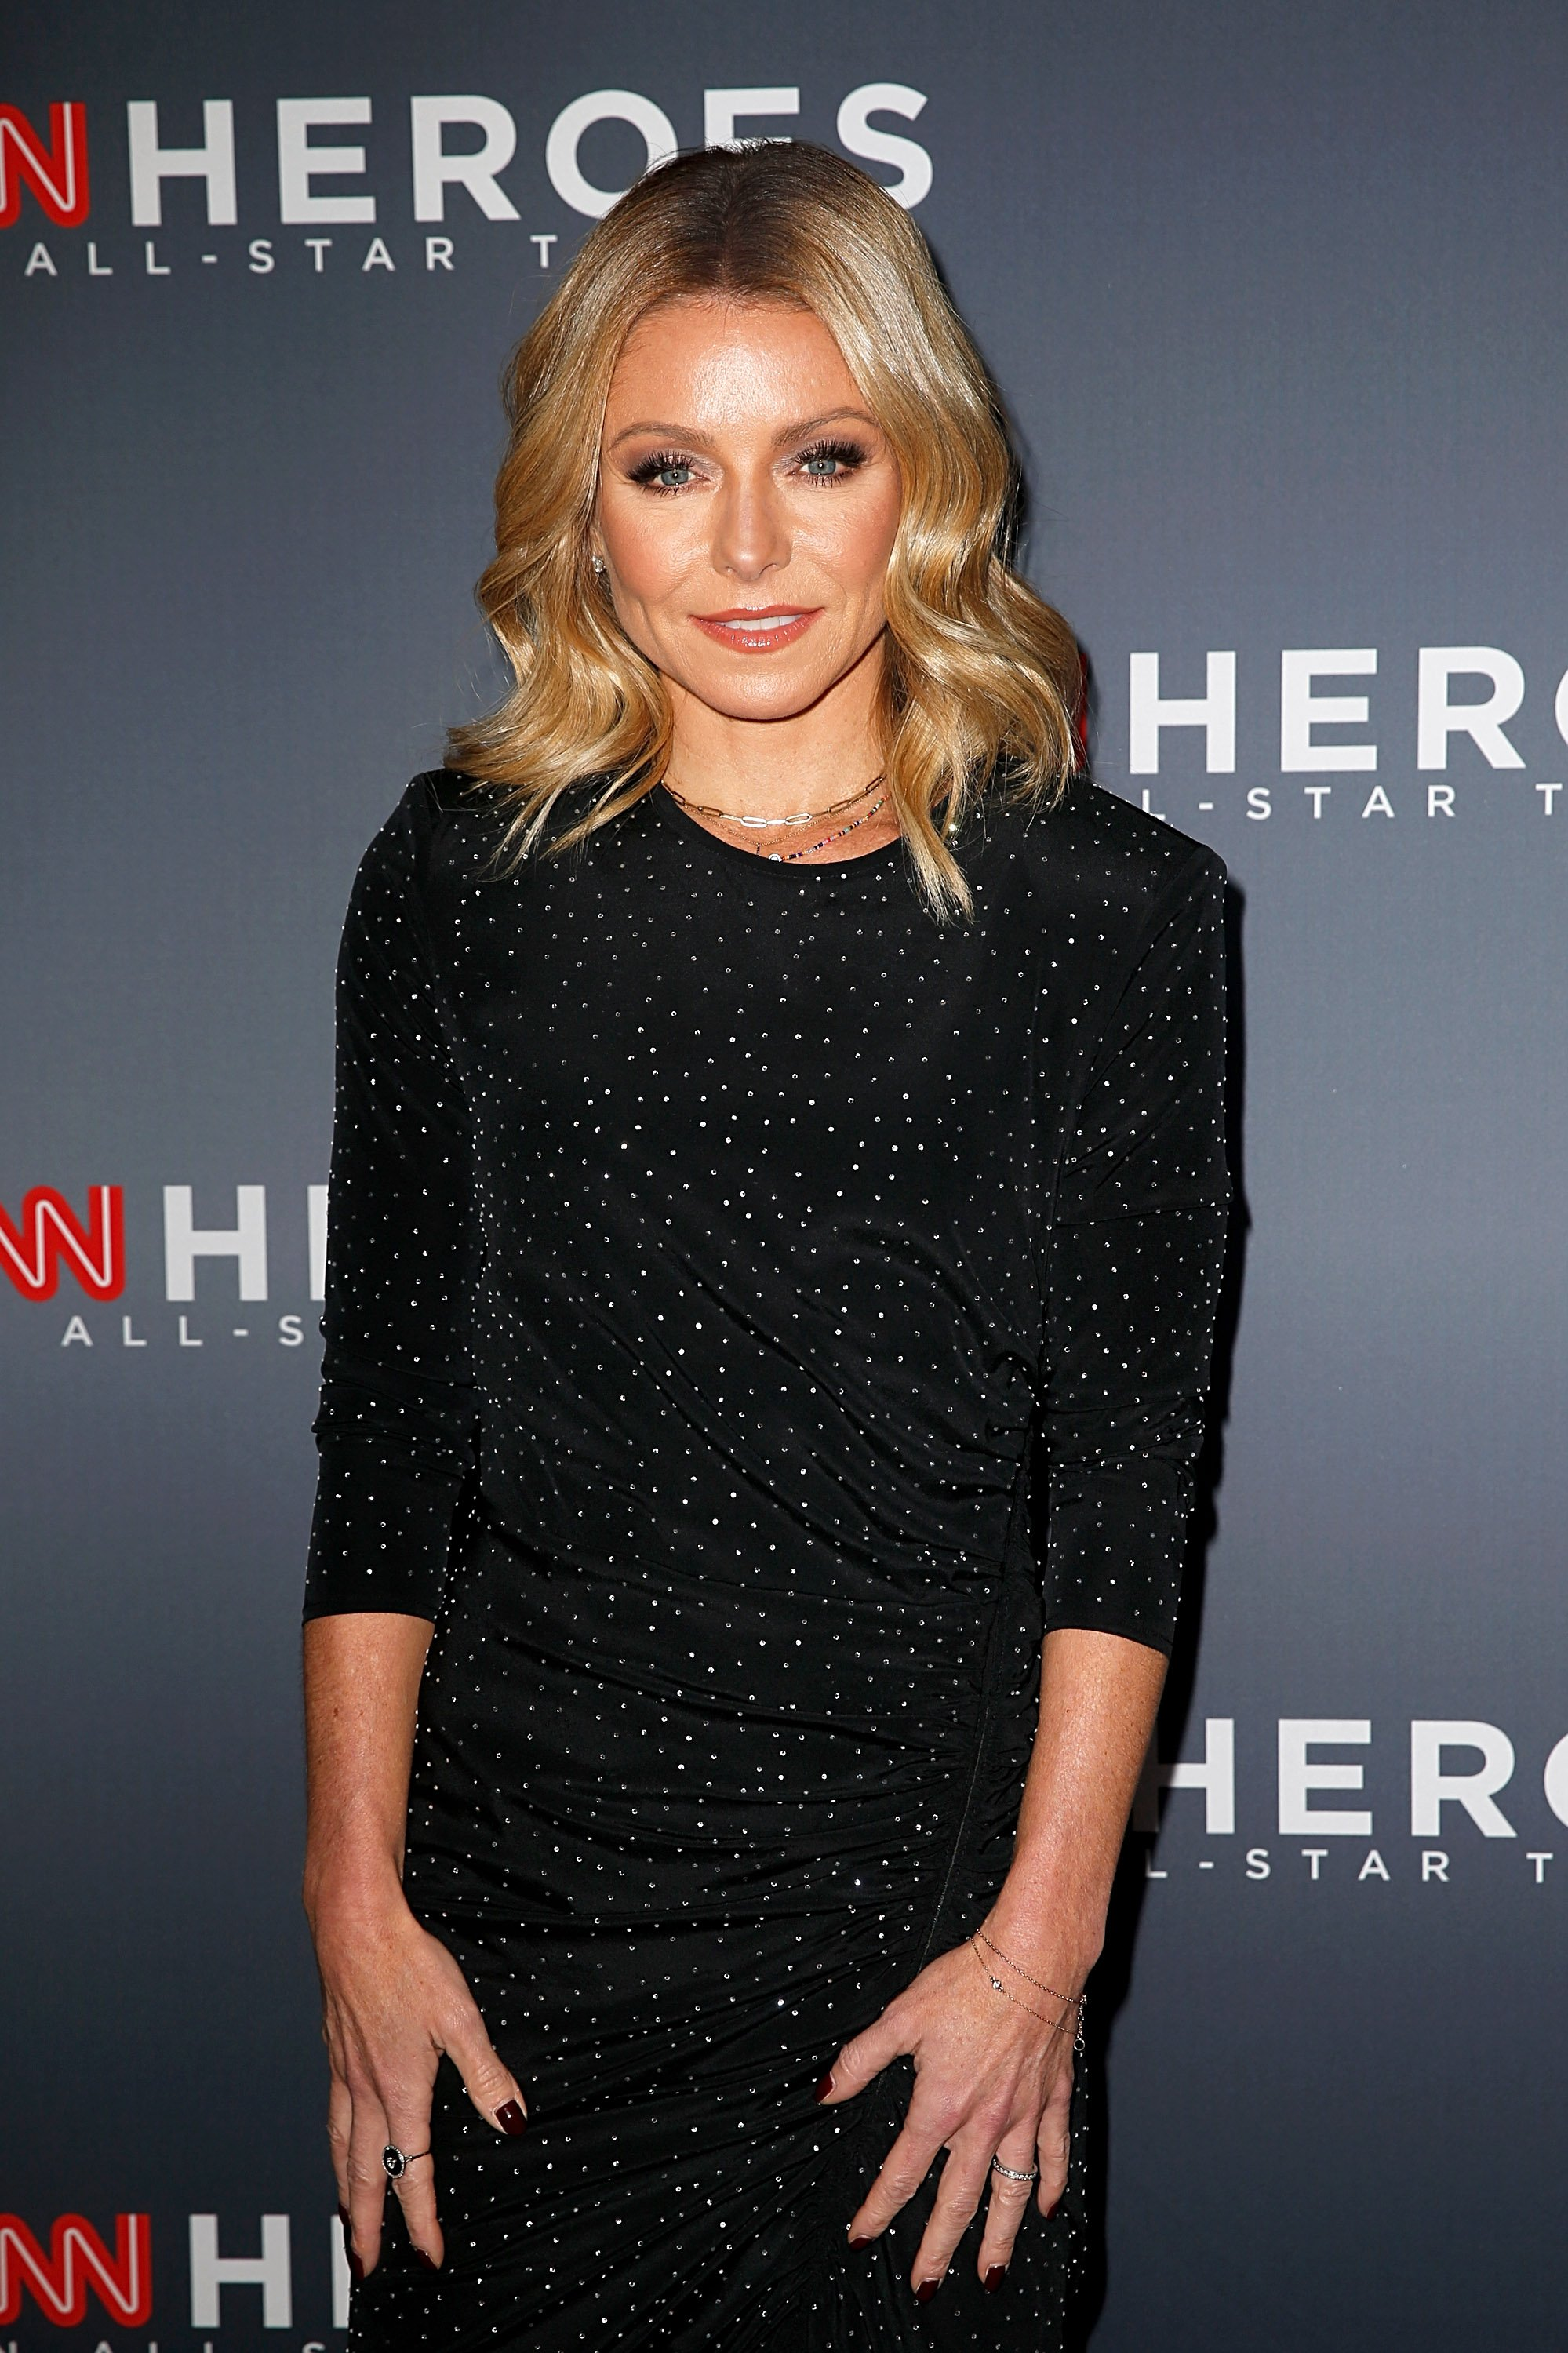 Kelly Ripa at the 12th Annual CNN Heroes An All-Star Tribute at American Museum of Natural History on December 09, 2018 in New York City | Photo: Getty Images